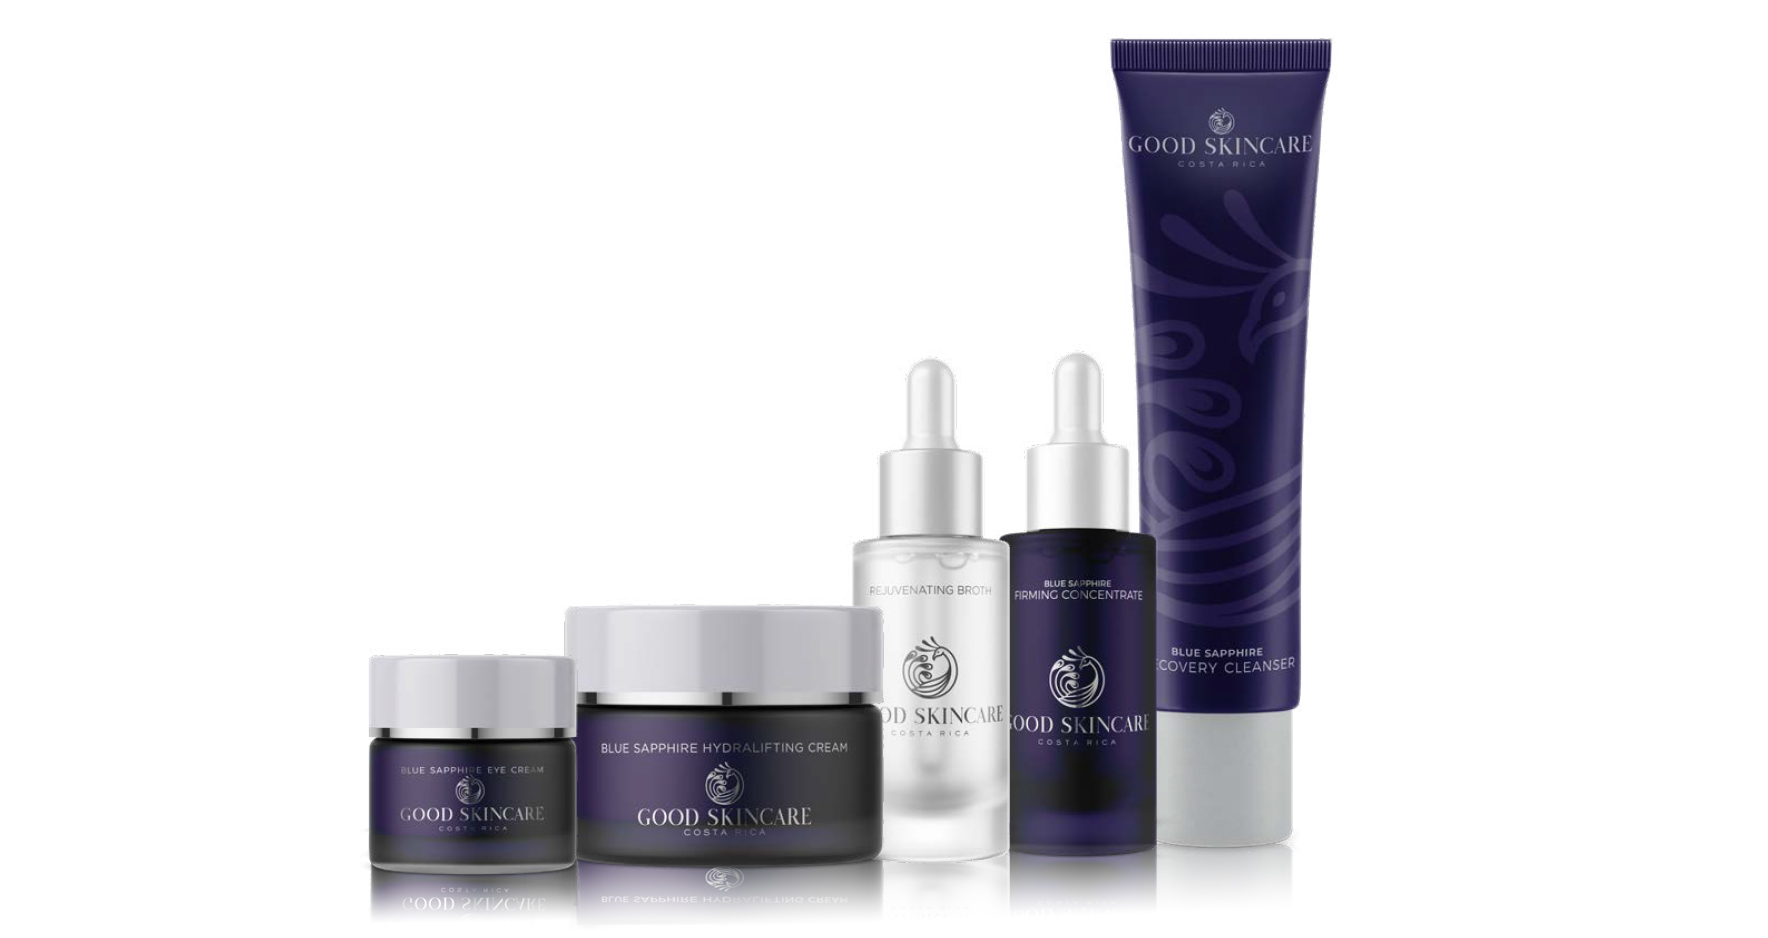 Good Skincare Packaging and Products